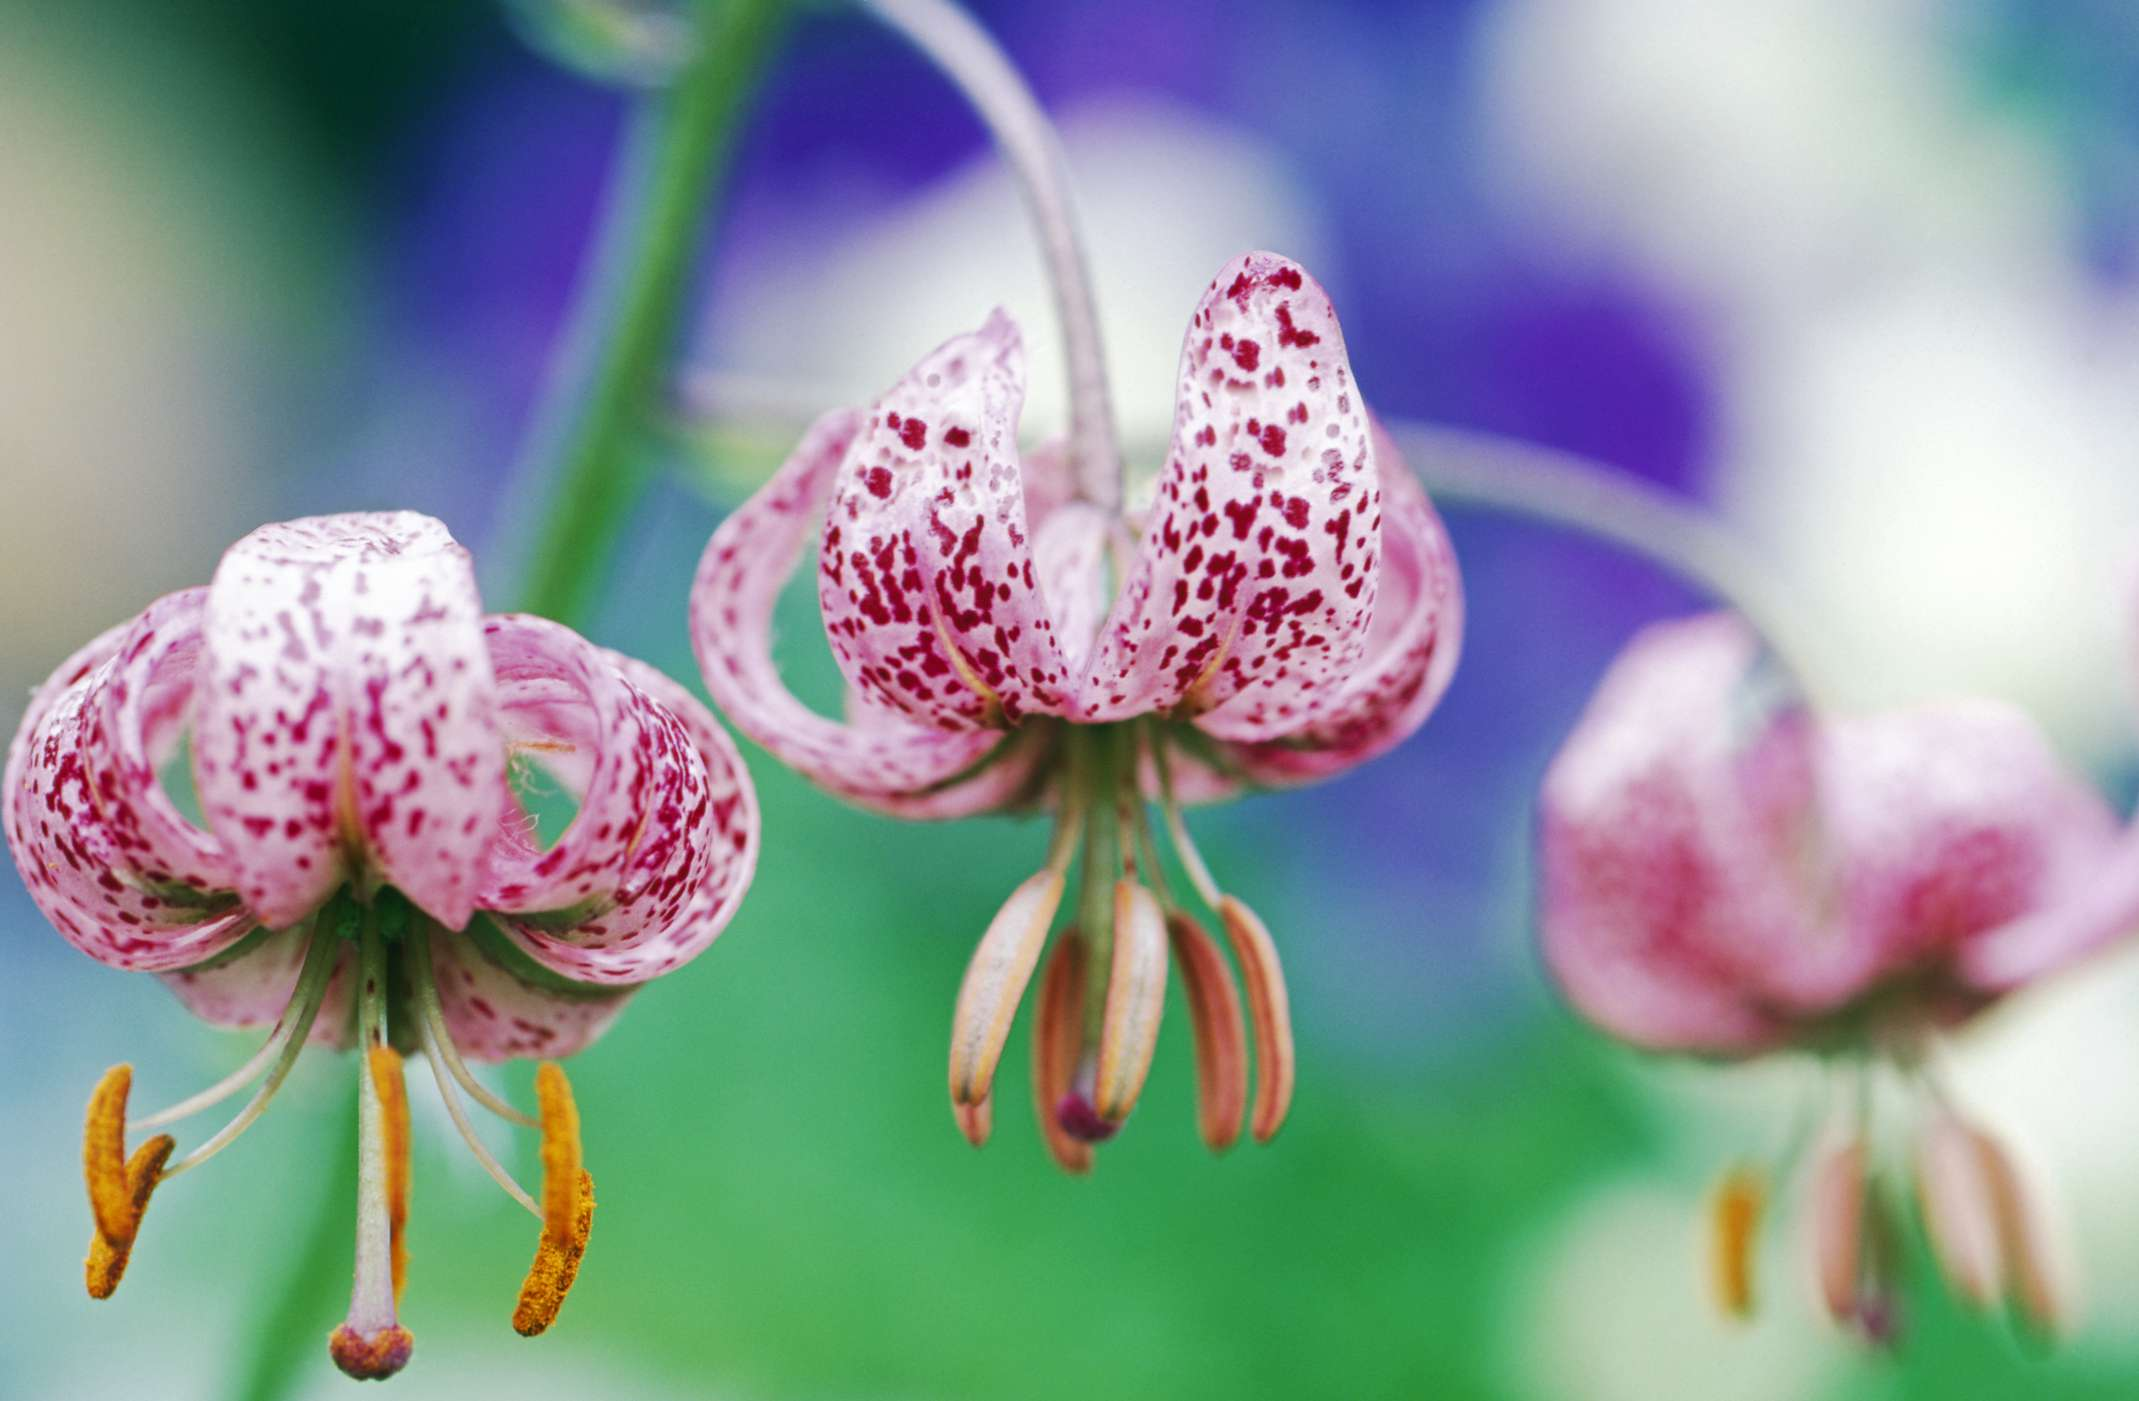 Martagon lilies with speckled pink flowers